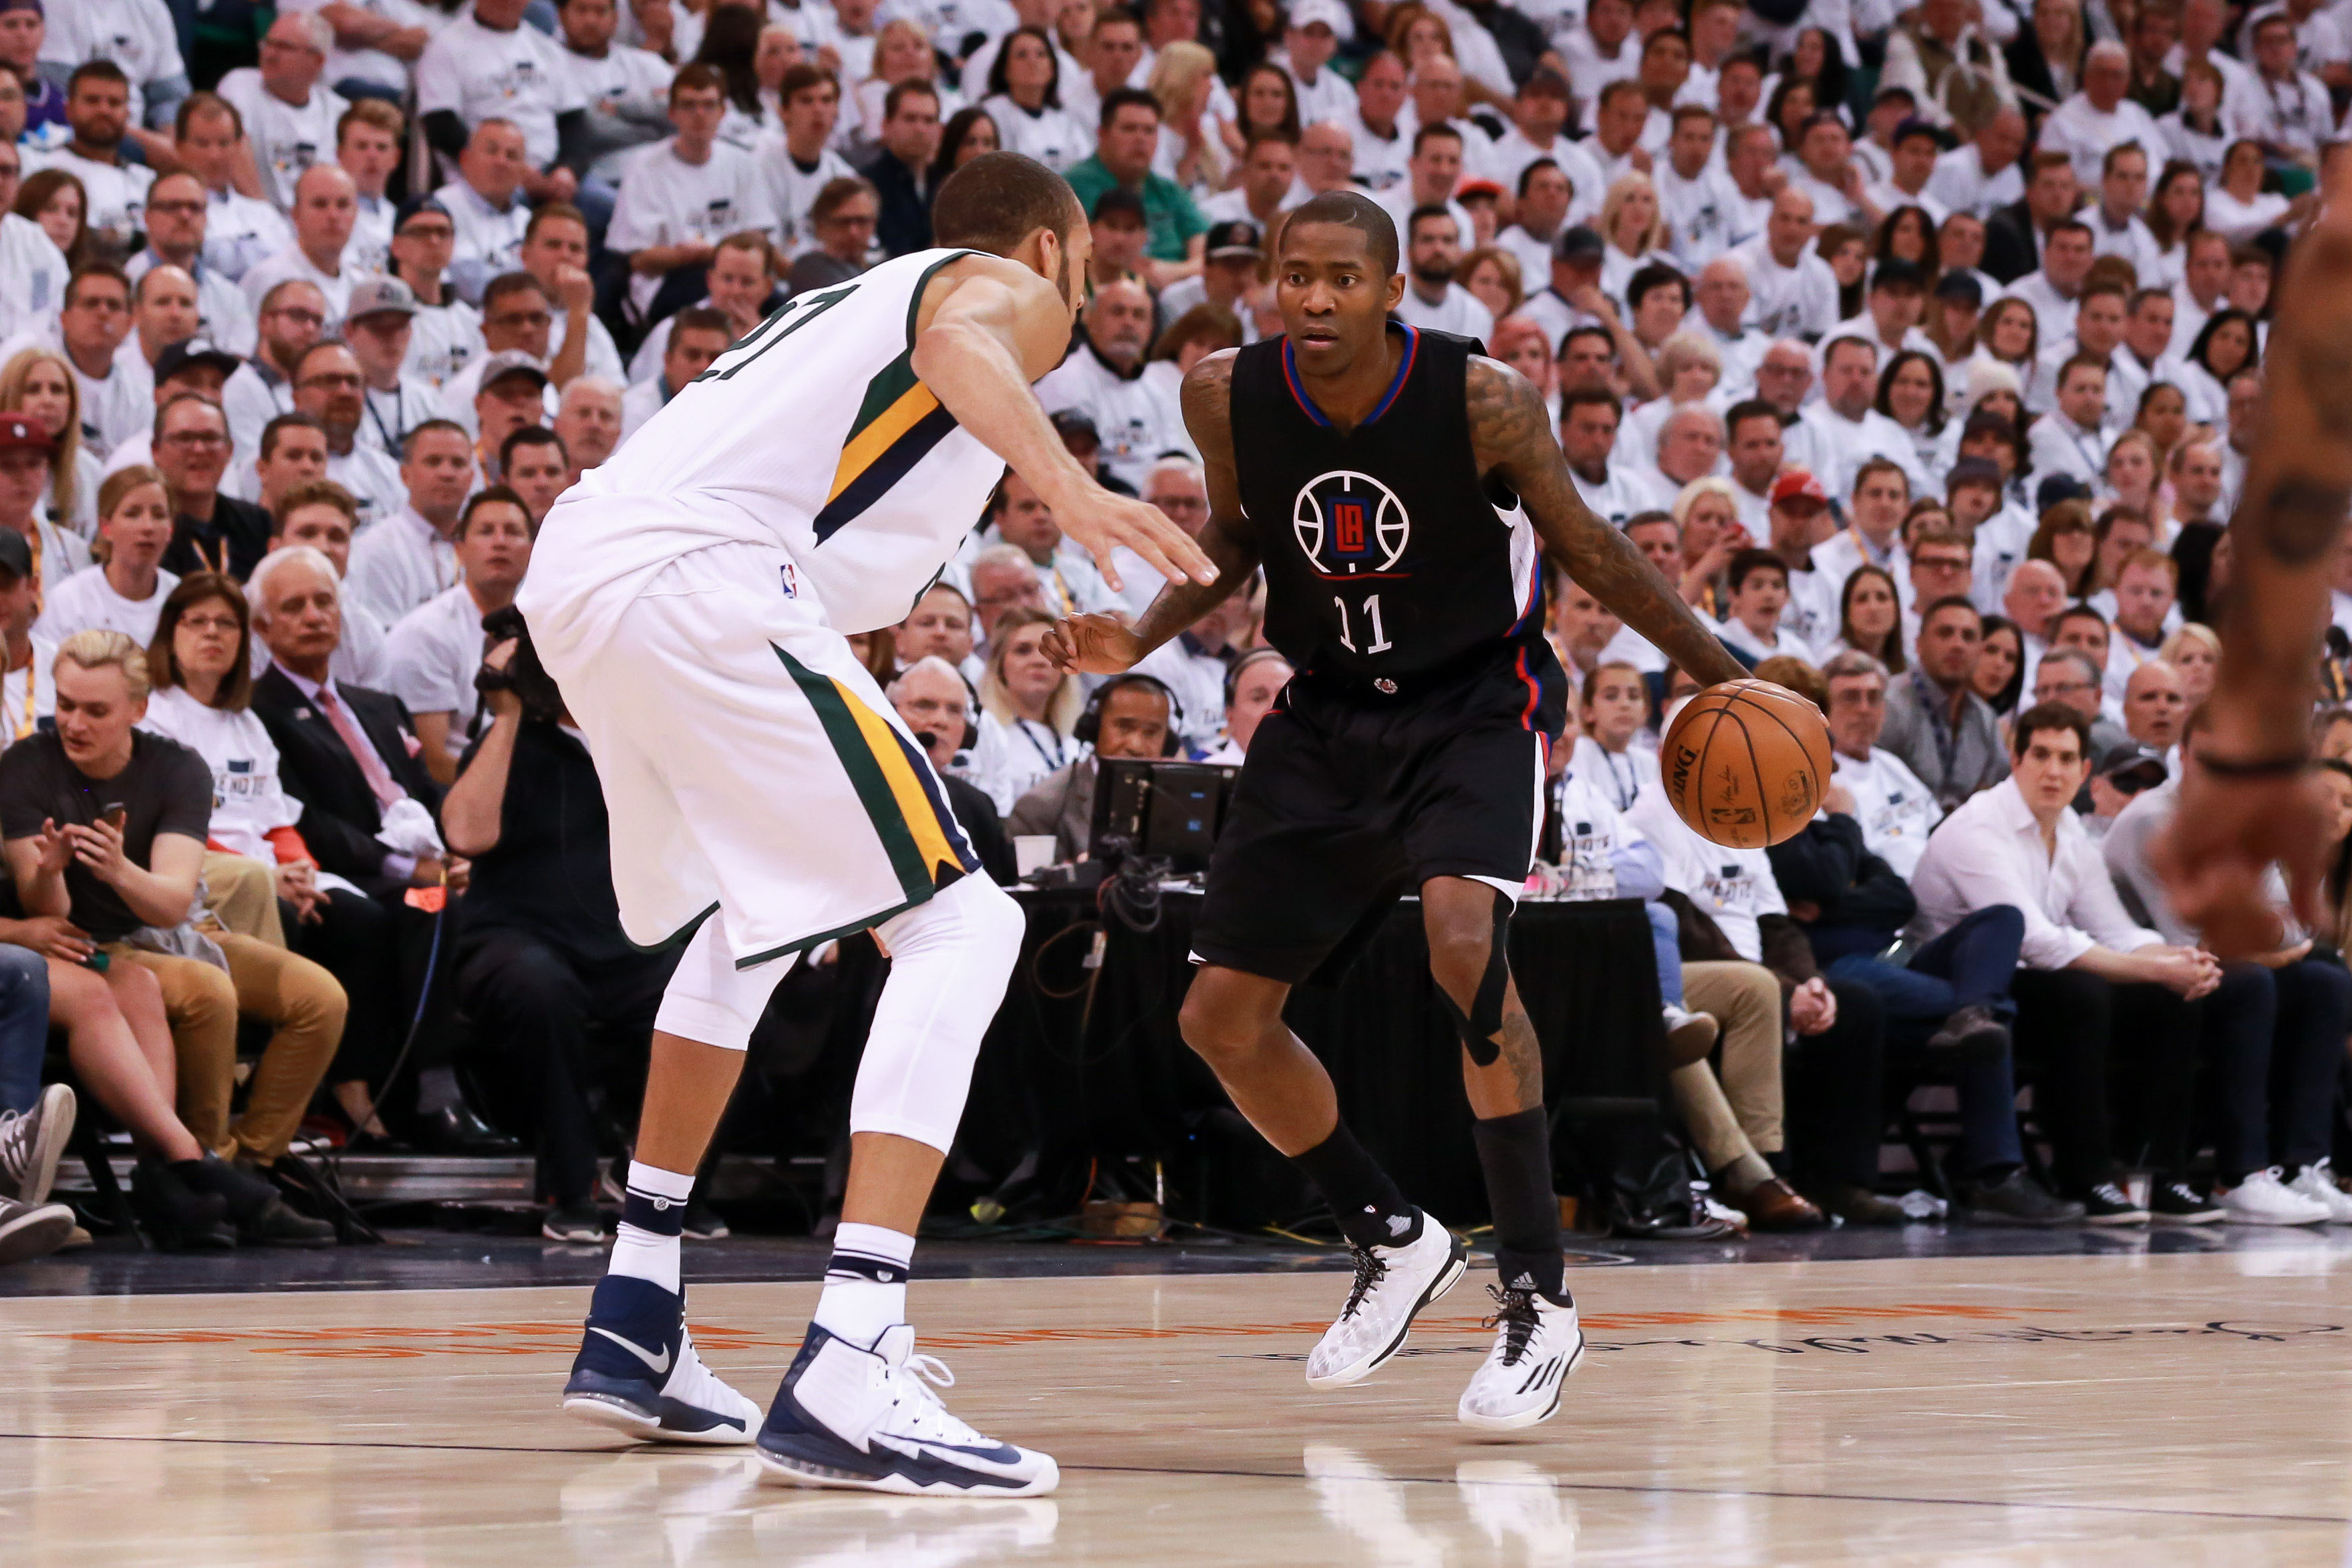 10035343-nba-playoffs-los-angeles-clippers-at-utah-jazz